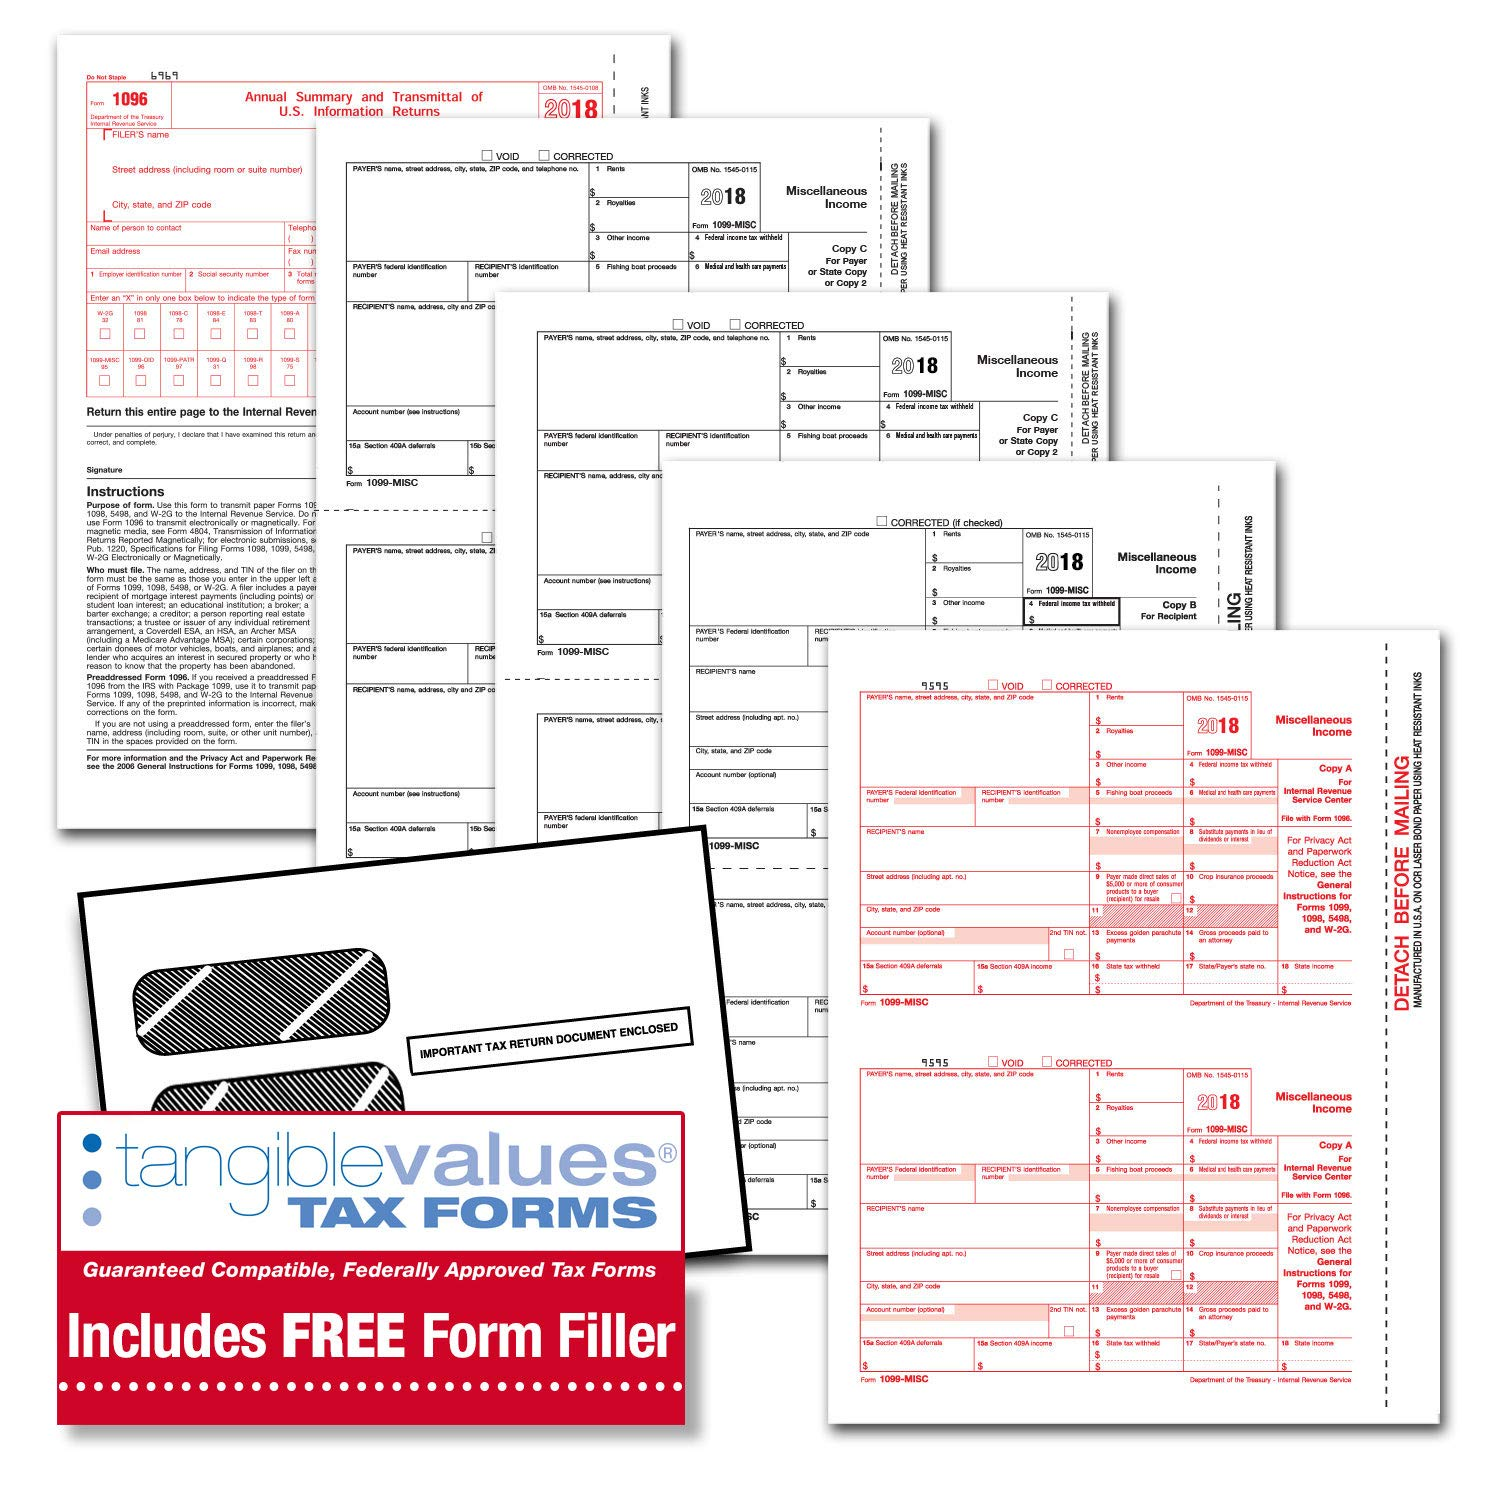 Tangible Values 1099 Misc Tax Forms (5-Part) Kit with Envelopes Plus Online Form Filler for 12 Individuals/Suppliers (2018)